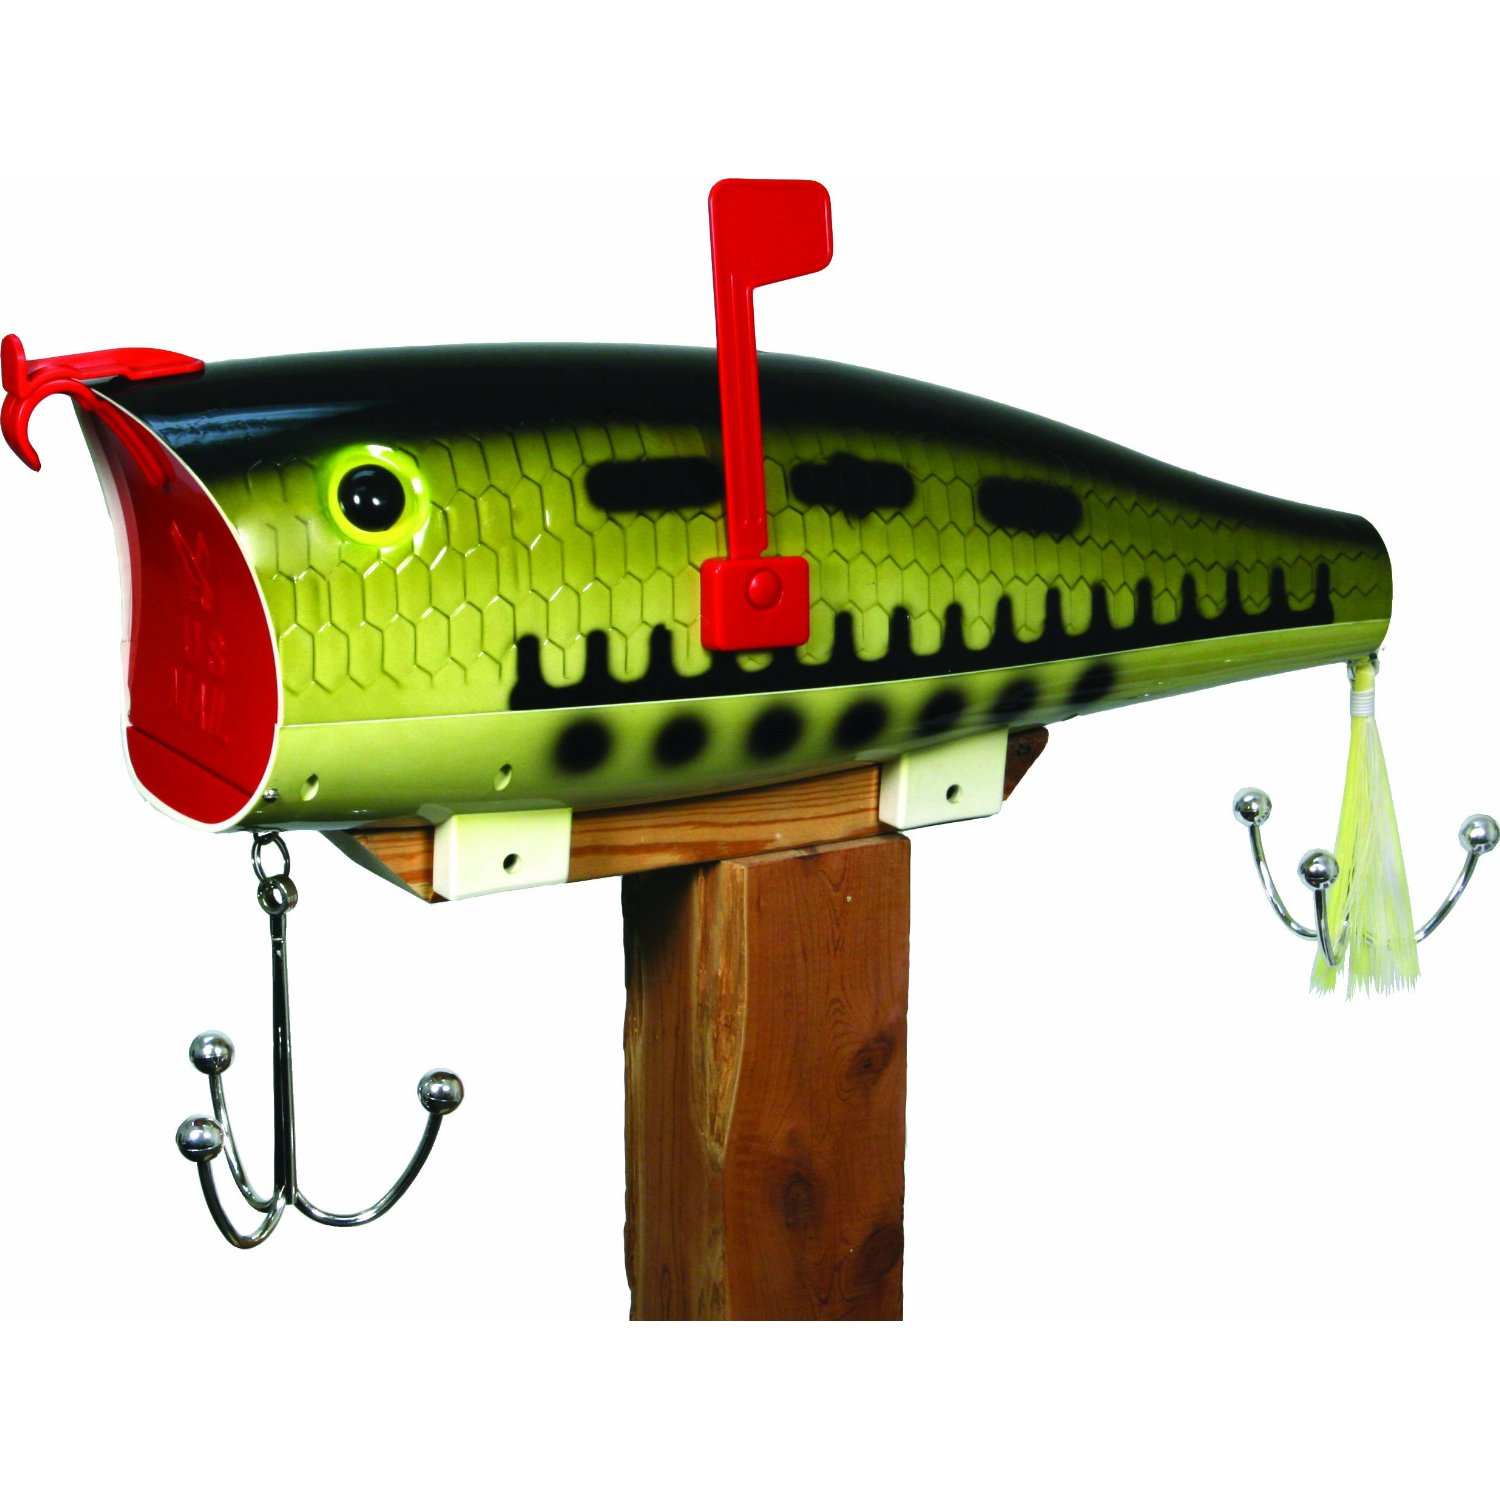 River 39 s edge fathers day bass fish popper fishing lure for Mail order fish